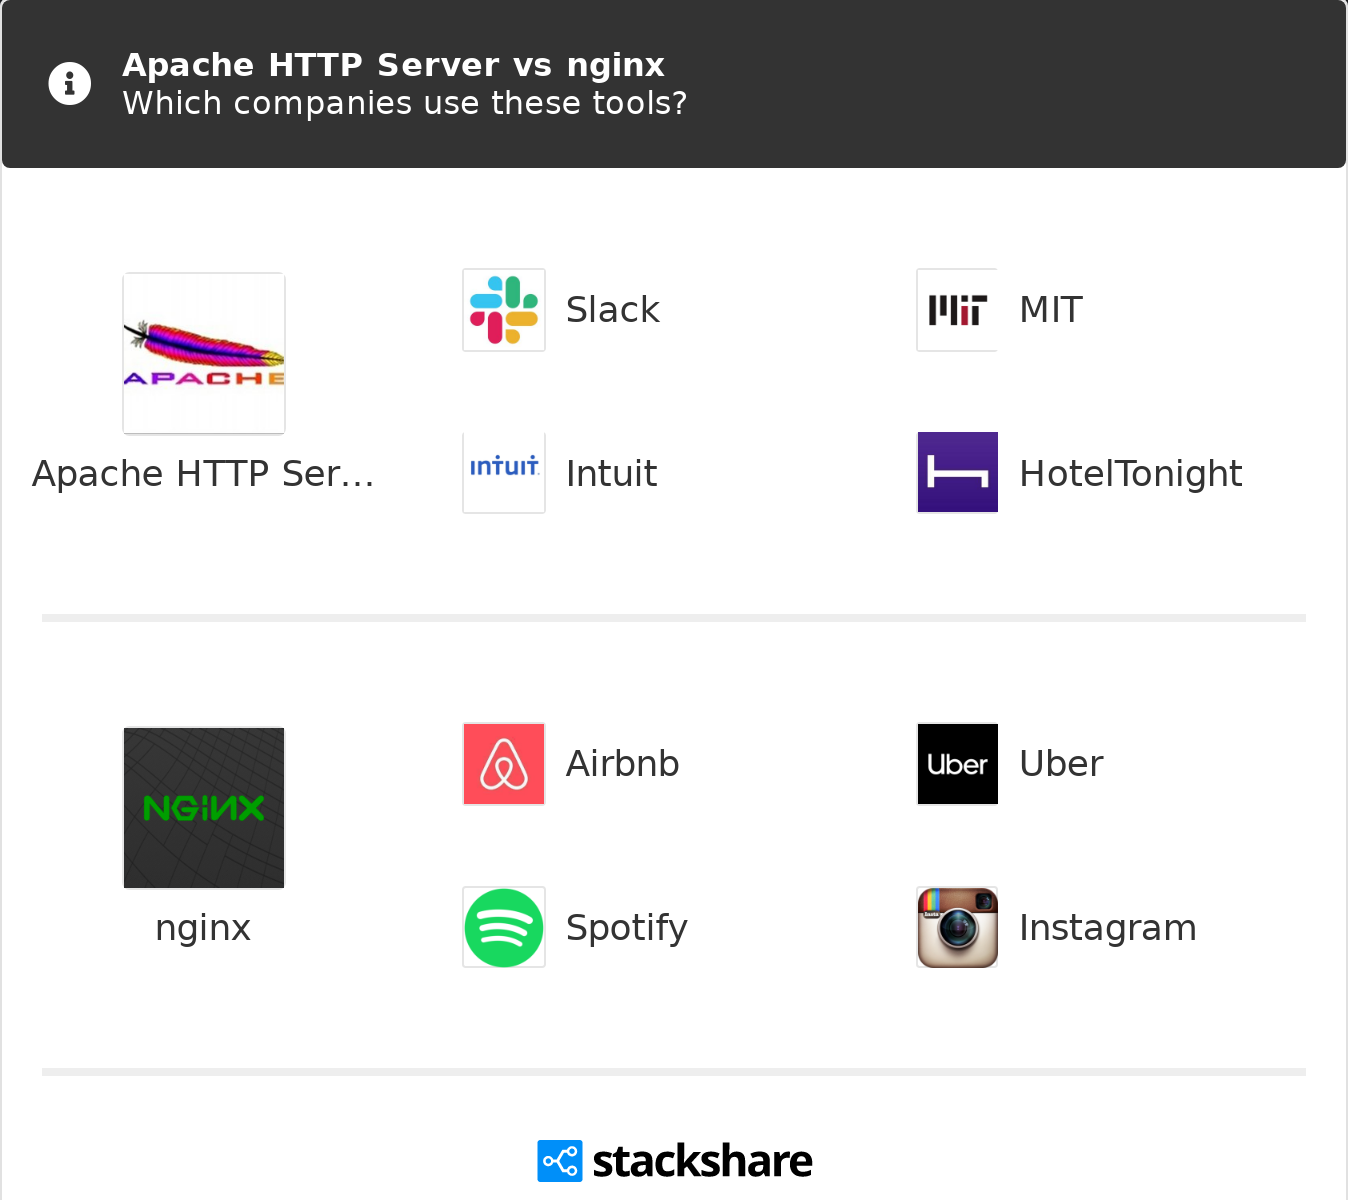 Apache HTTP Server vs nginx | What are the differences?